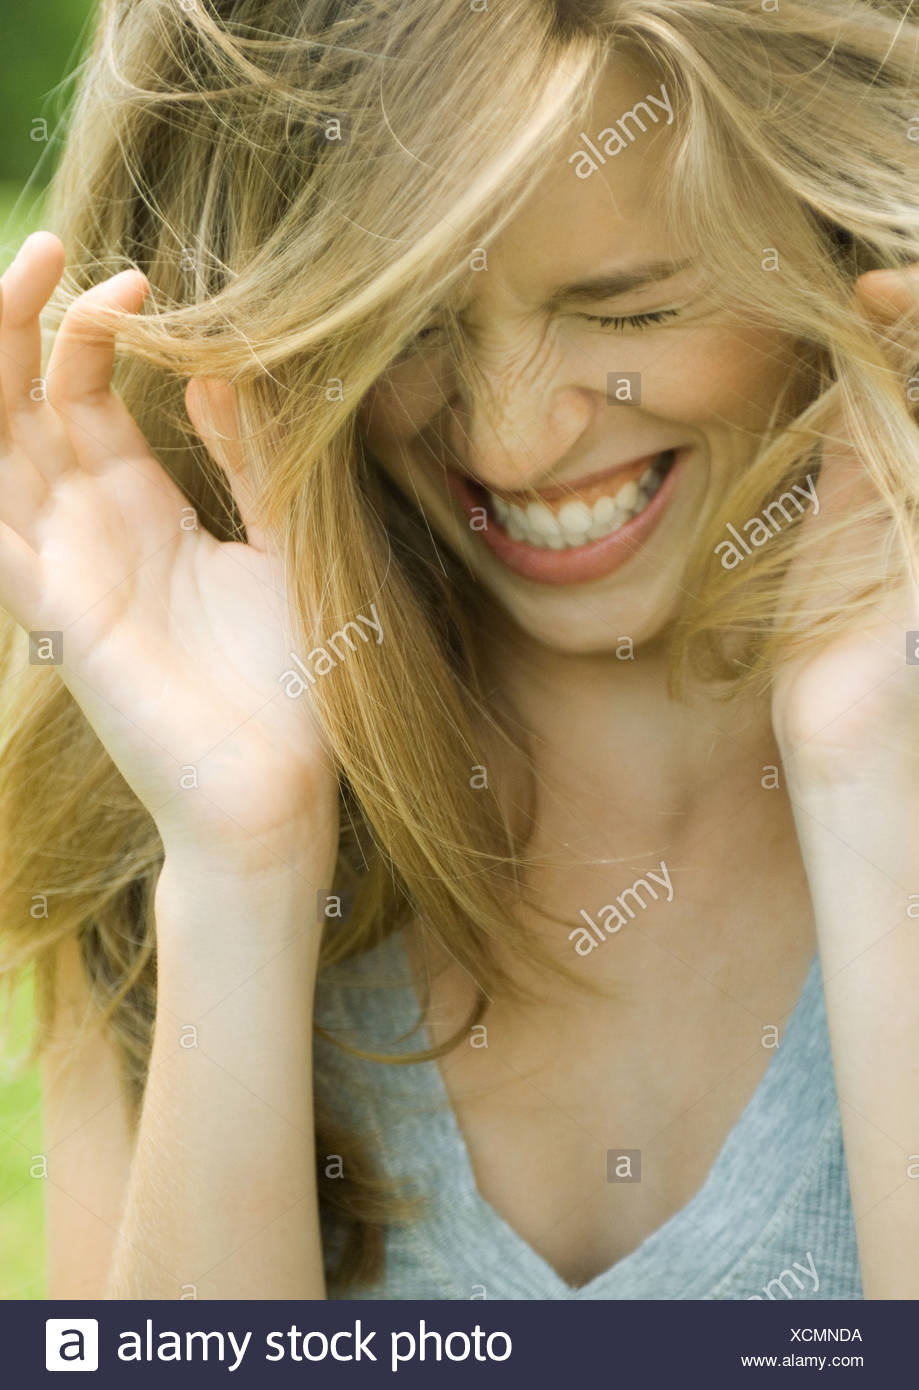 Young woman lowering head, shutting eyes and laughing with hands up - Stock Image